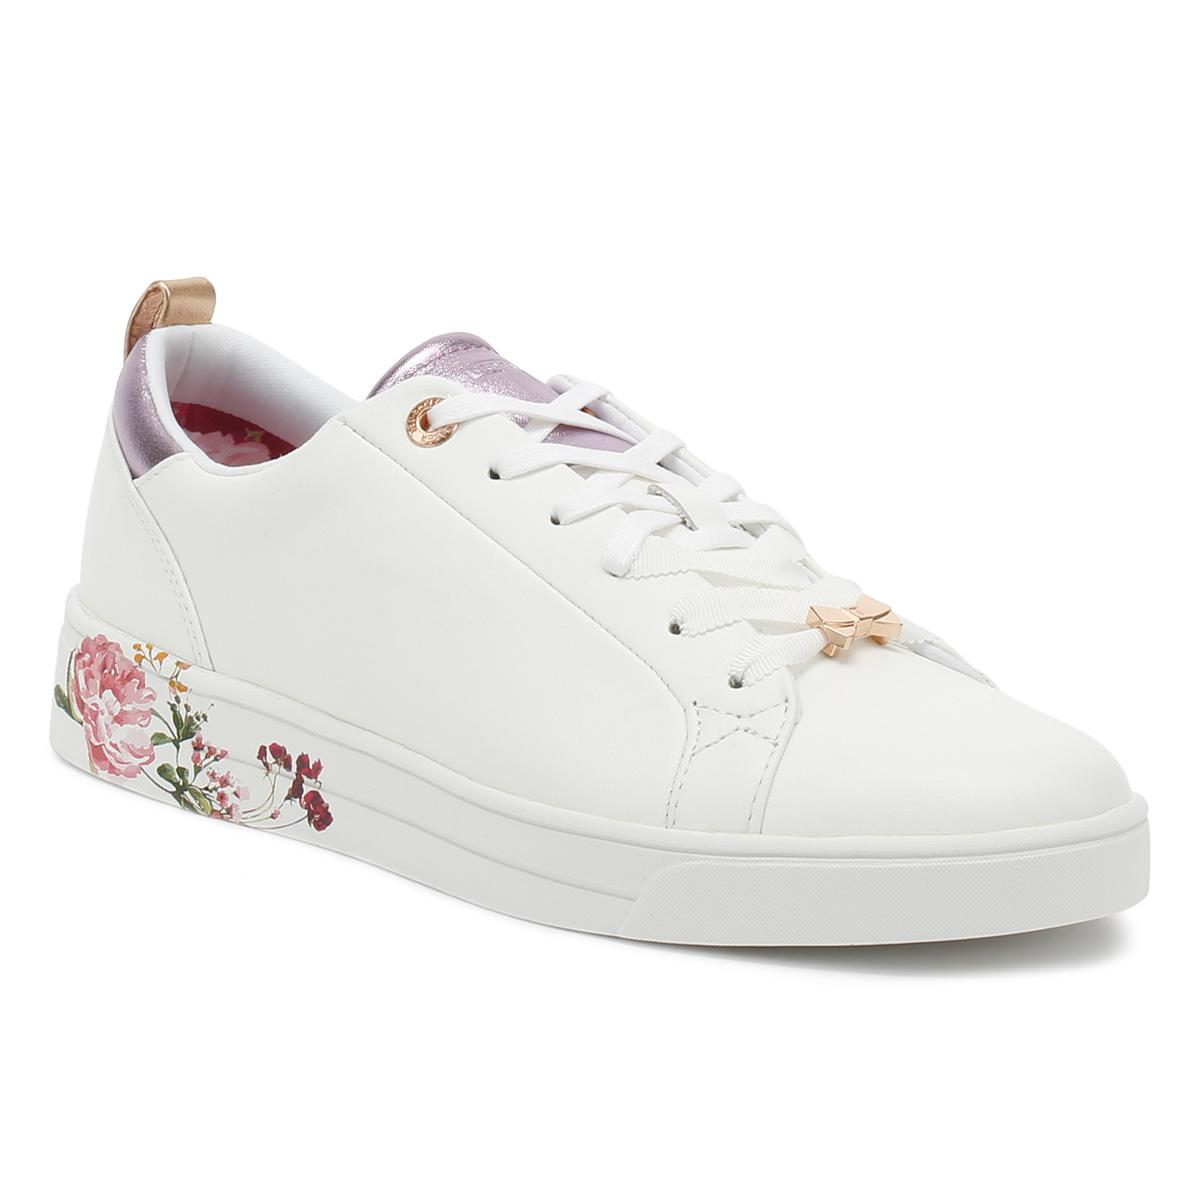 Ted Baker Women's Giellip Trainers Pre Order Sale Cheap Prices Shop Online Clearance Cheap Real Free Shipping Best Wholesale fTdVLEl8